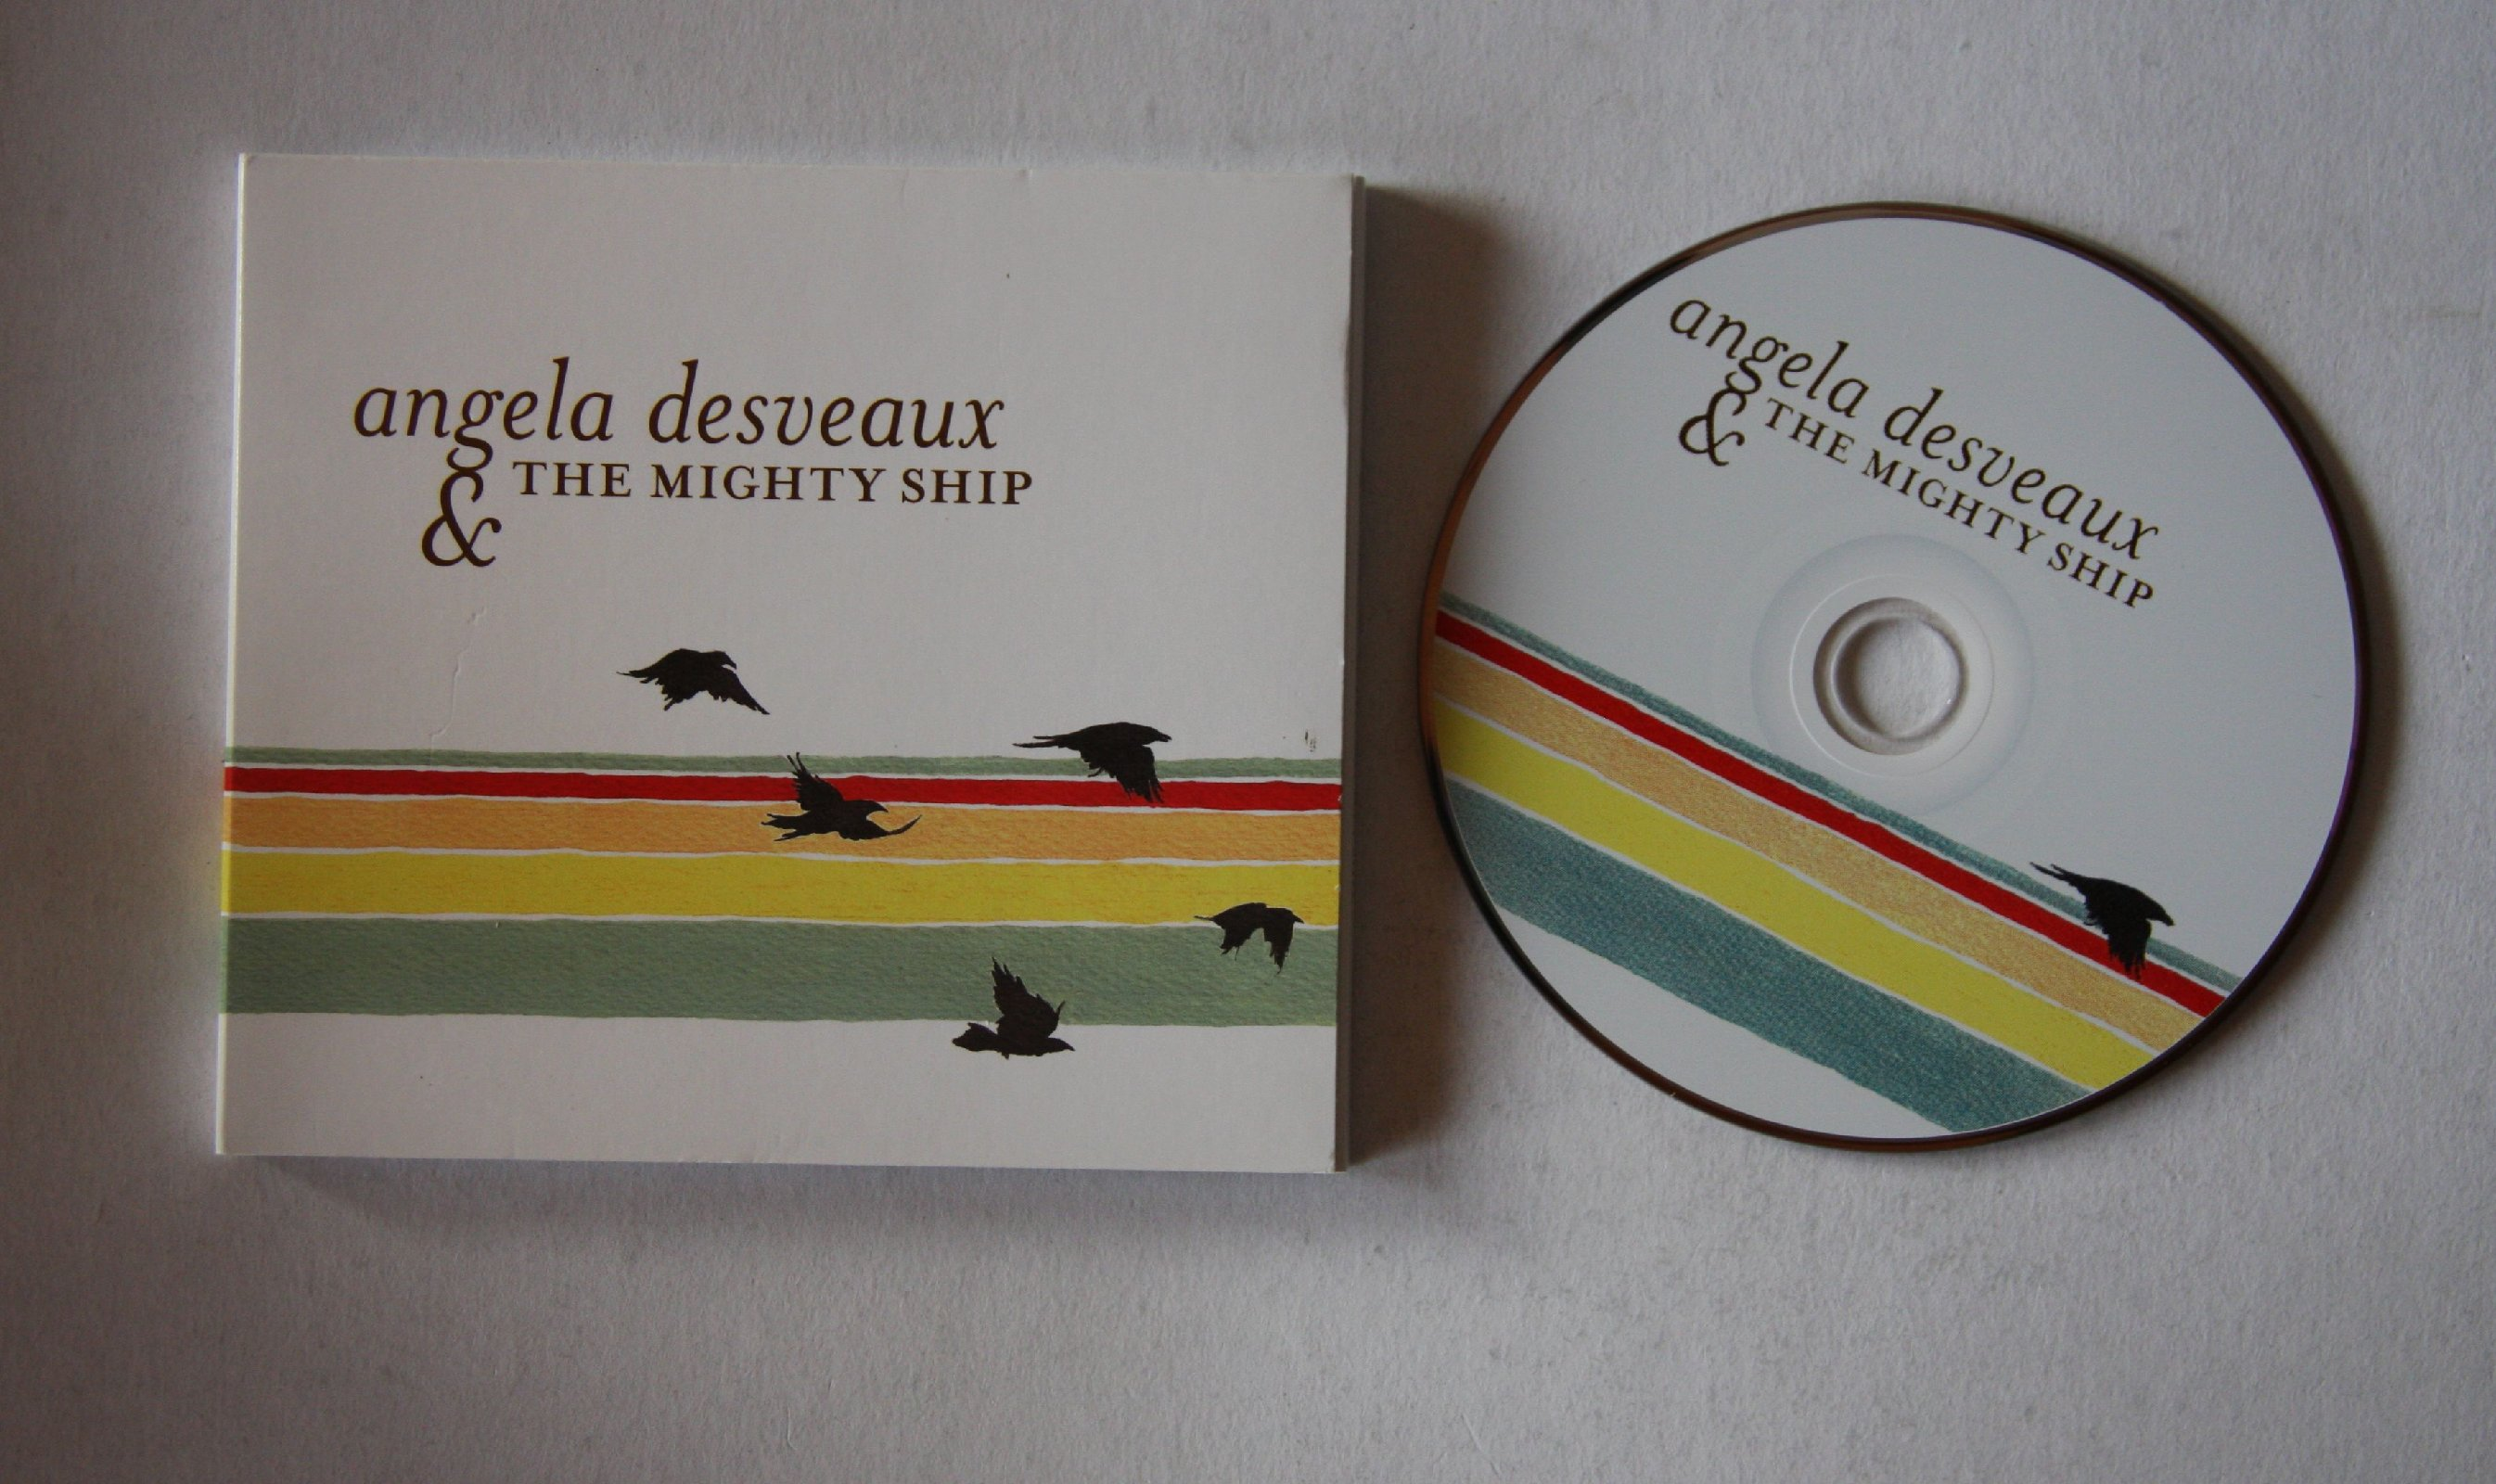 Angela Desveaux & The Mighty Ship - Angela Desveaux & The Mighty Ship